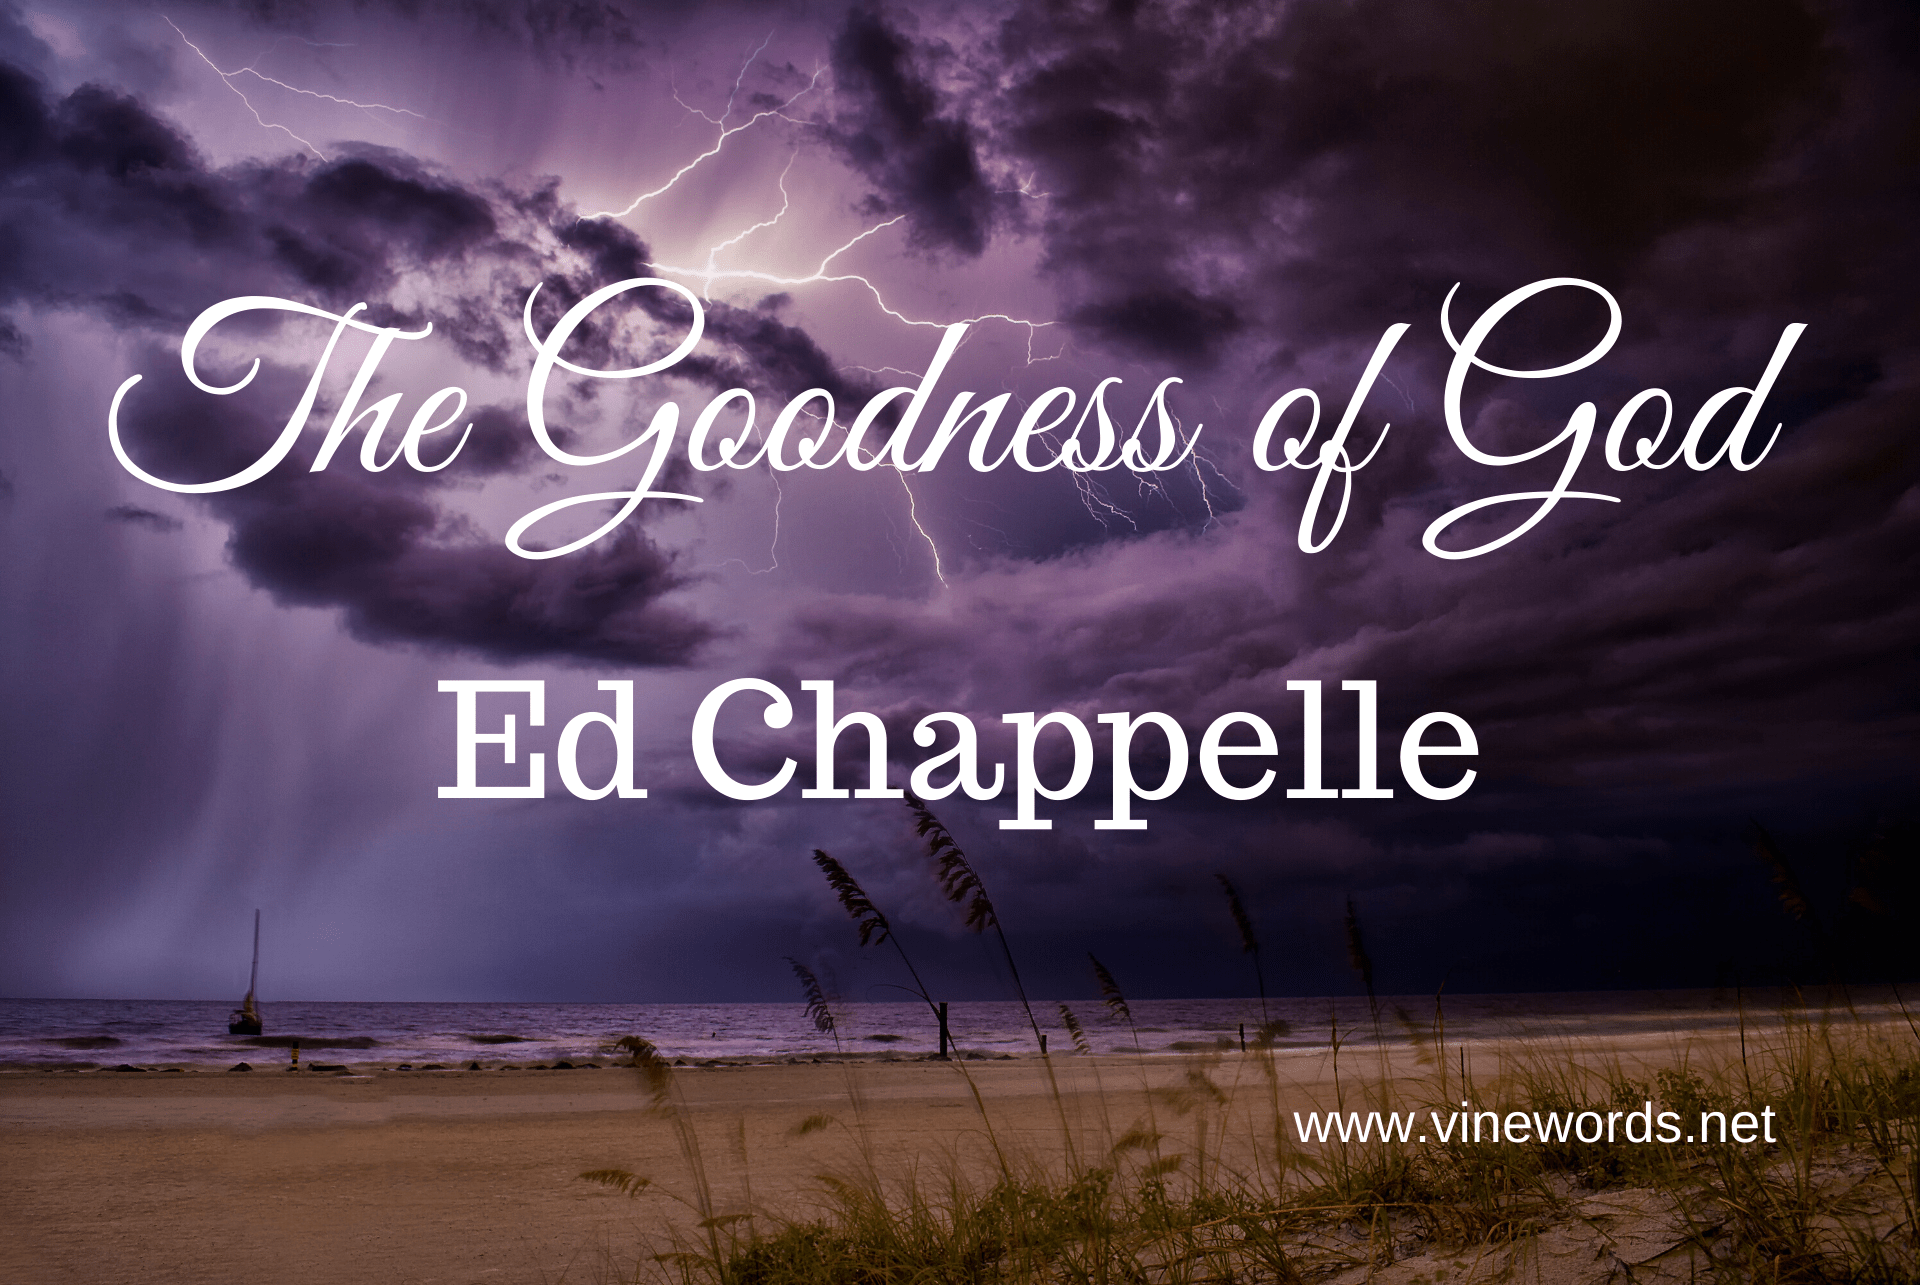 Ed Chappelle: The Goodness of God